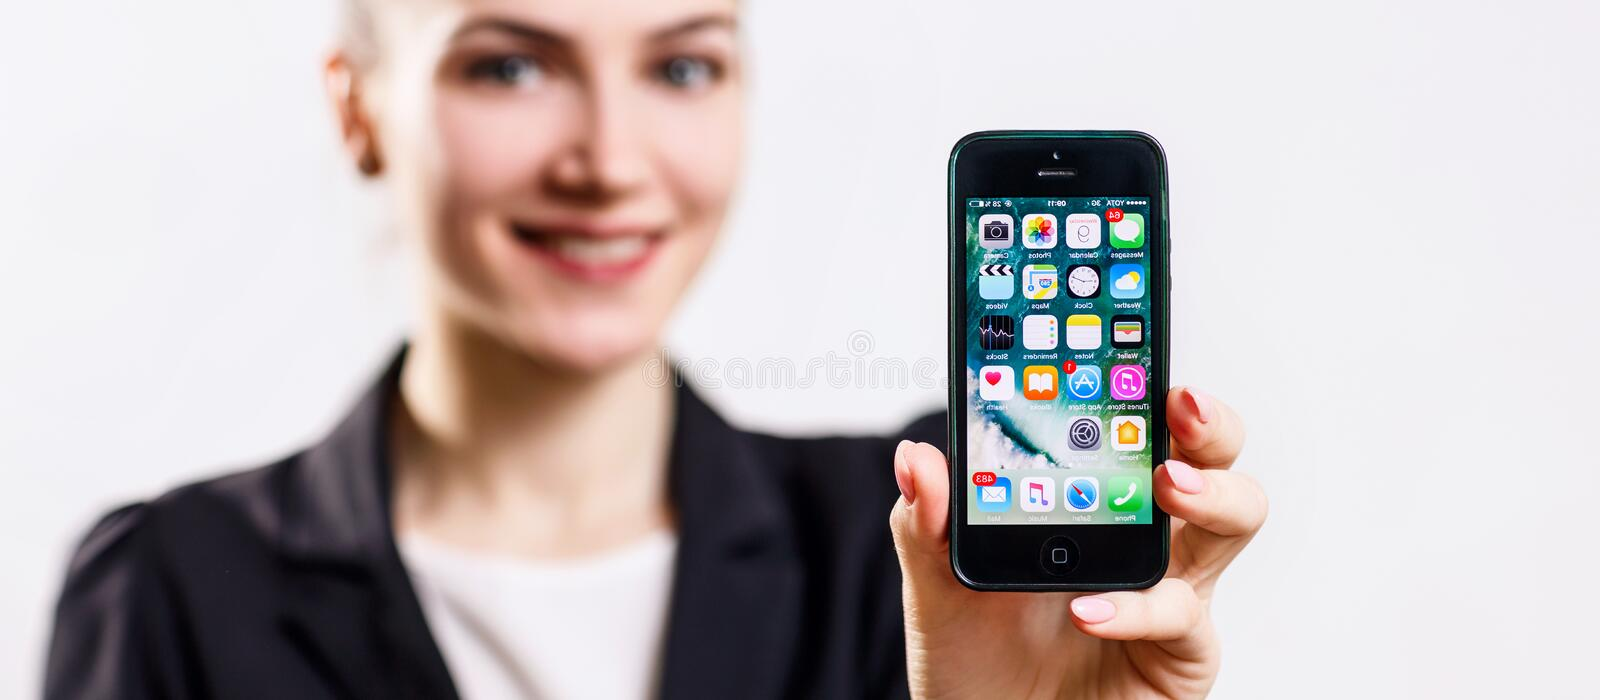 Young woman holds black Apple iPhone 5 display in hand. royalty free stock photos